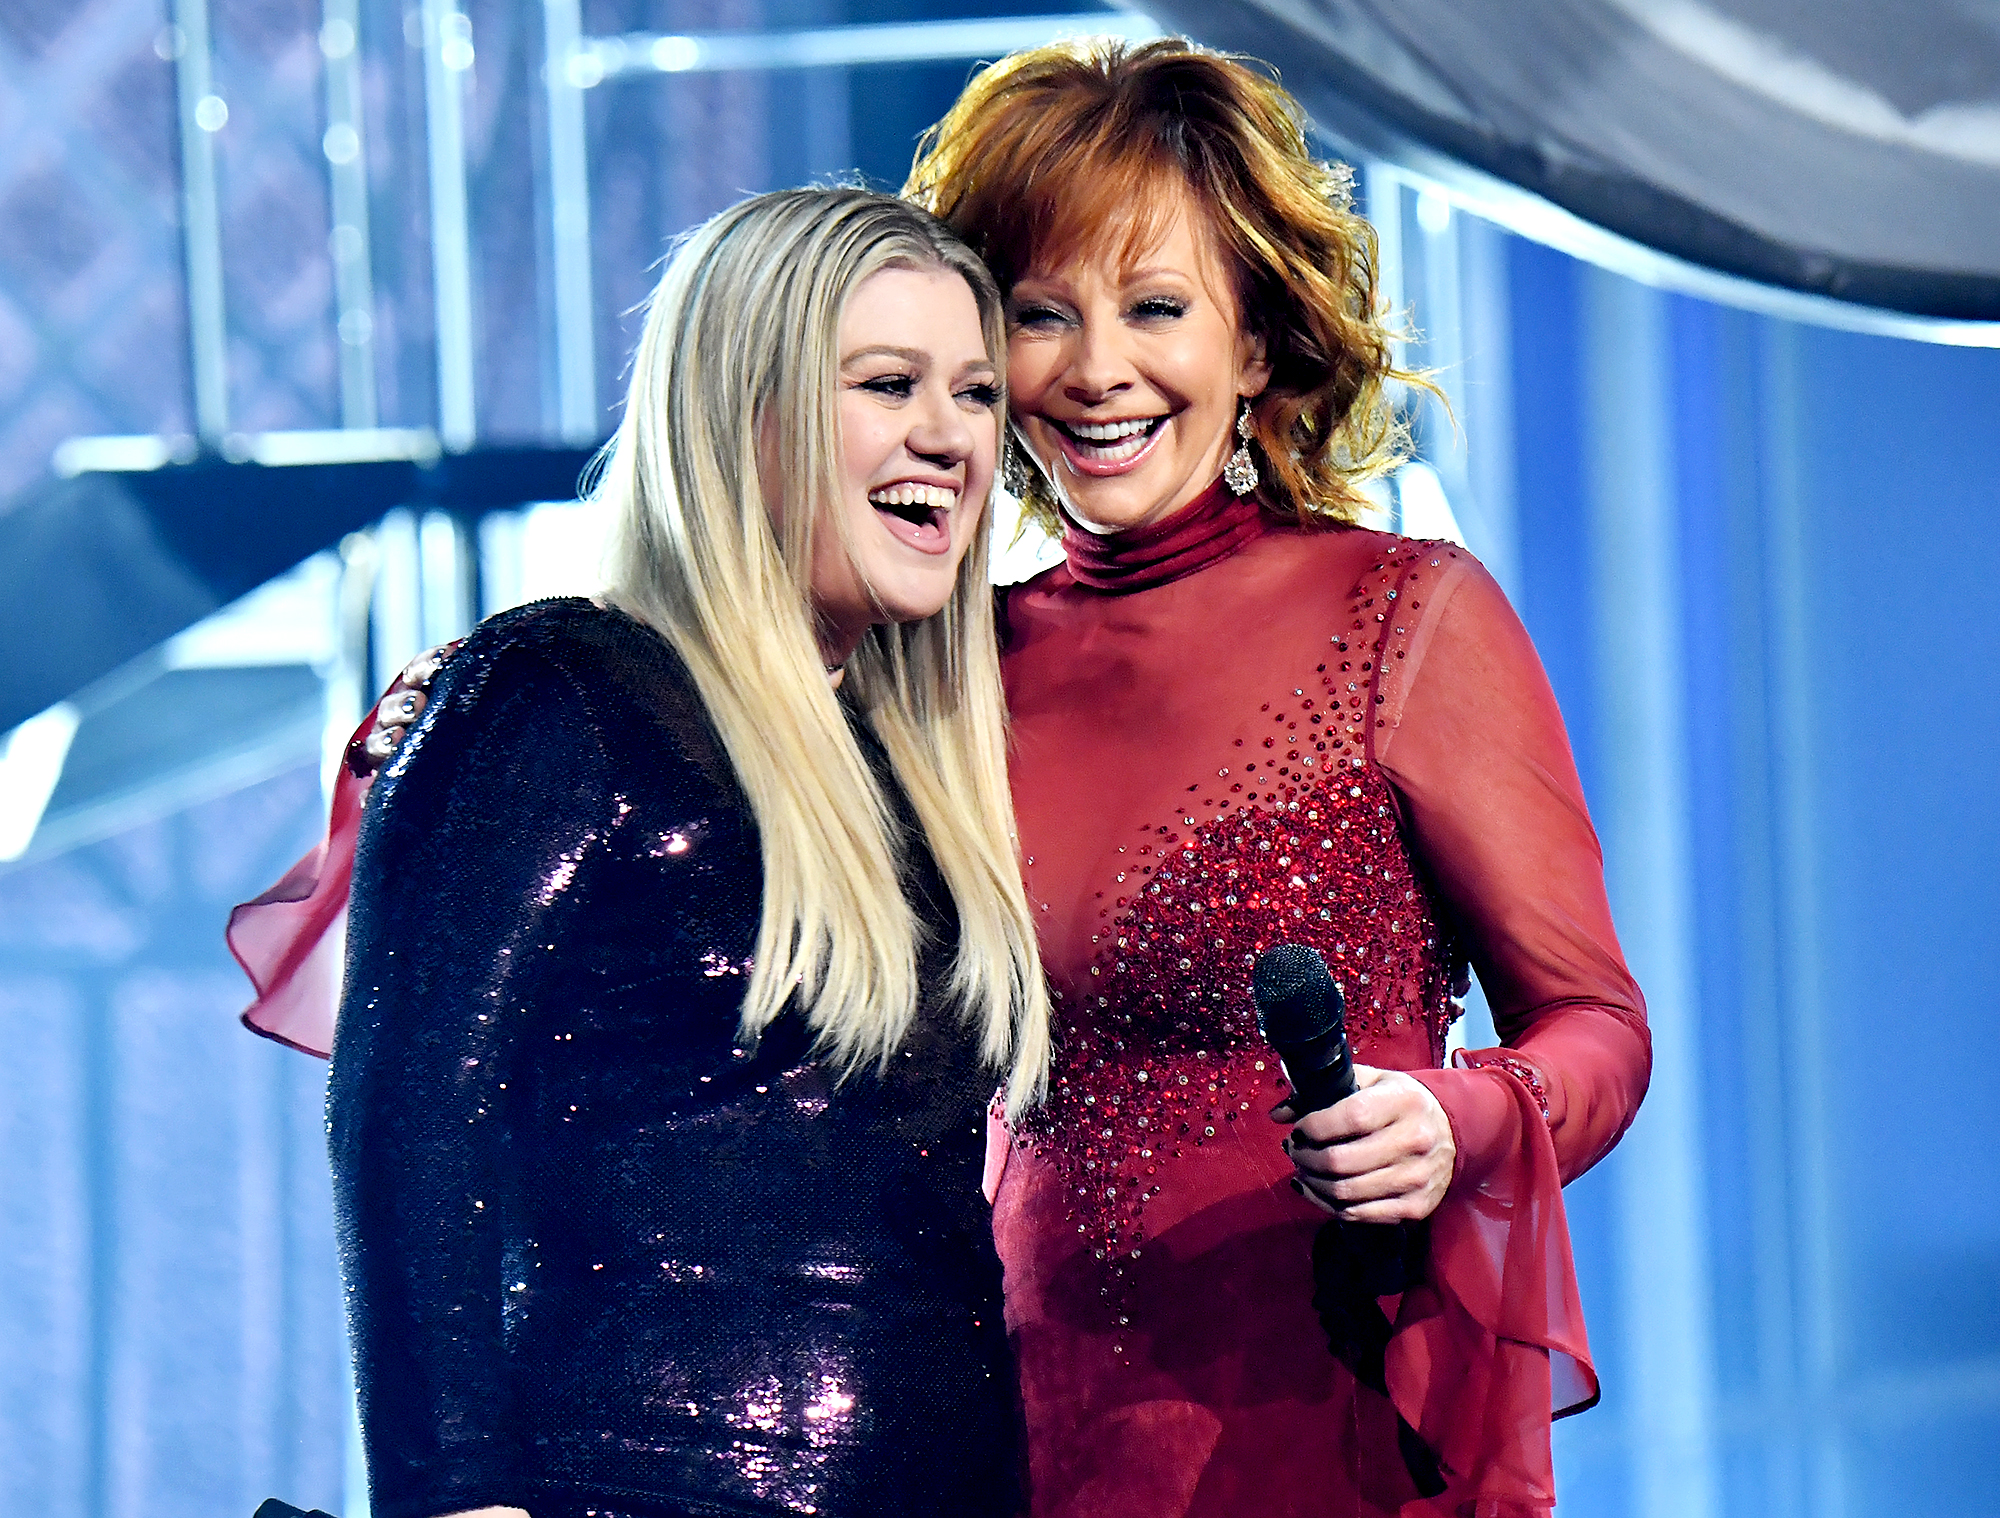 "Kelly-Clarkson-and-Reba-McEntire - Clarkson, who is married to McEntire's former stepson Brandon Blackstock , paid tribute to the country music icon at the 2018 Kennedy Center Honors. ""Sometimes when we meet our heroes, it doesn't always pan out how you hope. But meeting Reba — being friends with her, and eventually becoming family — has been one of the highlights of my life, truly,"" the American Idol alum raved in December 2018."